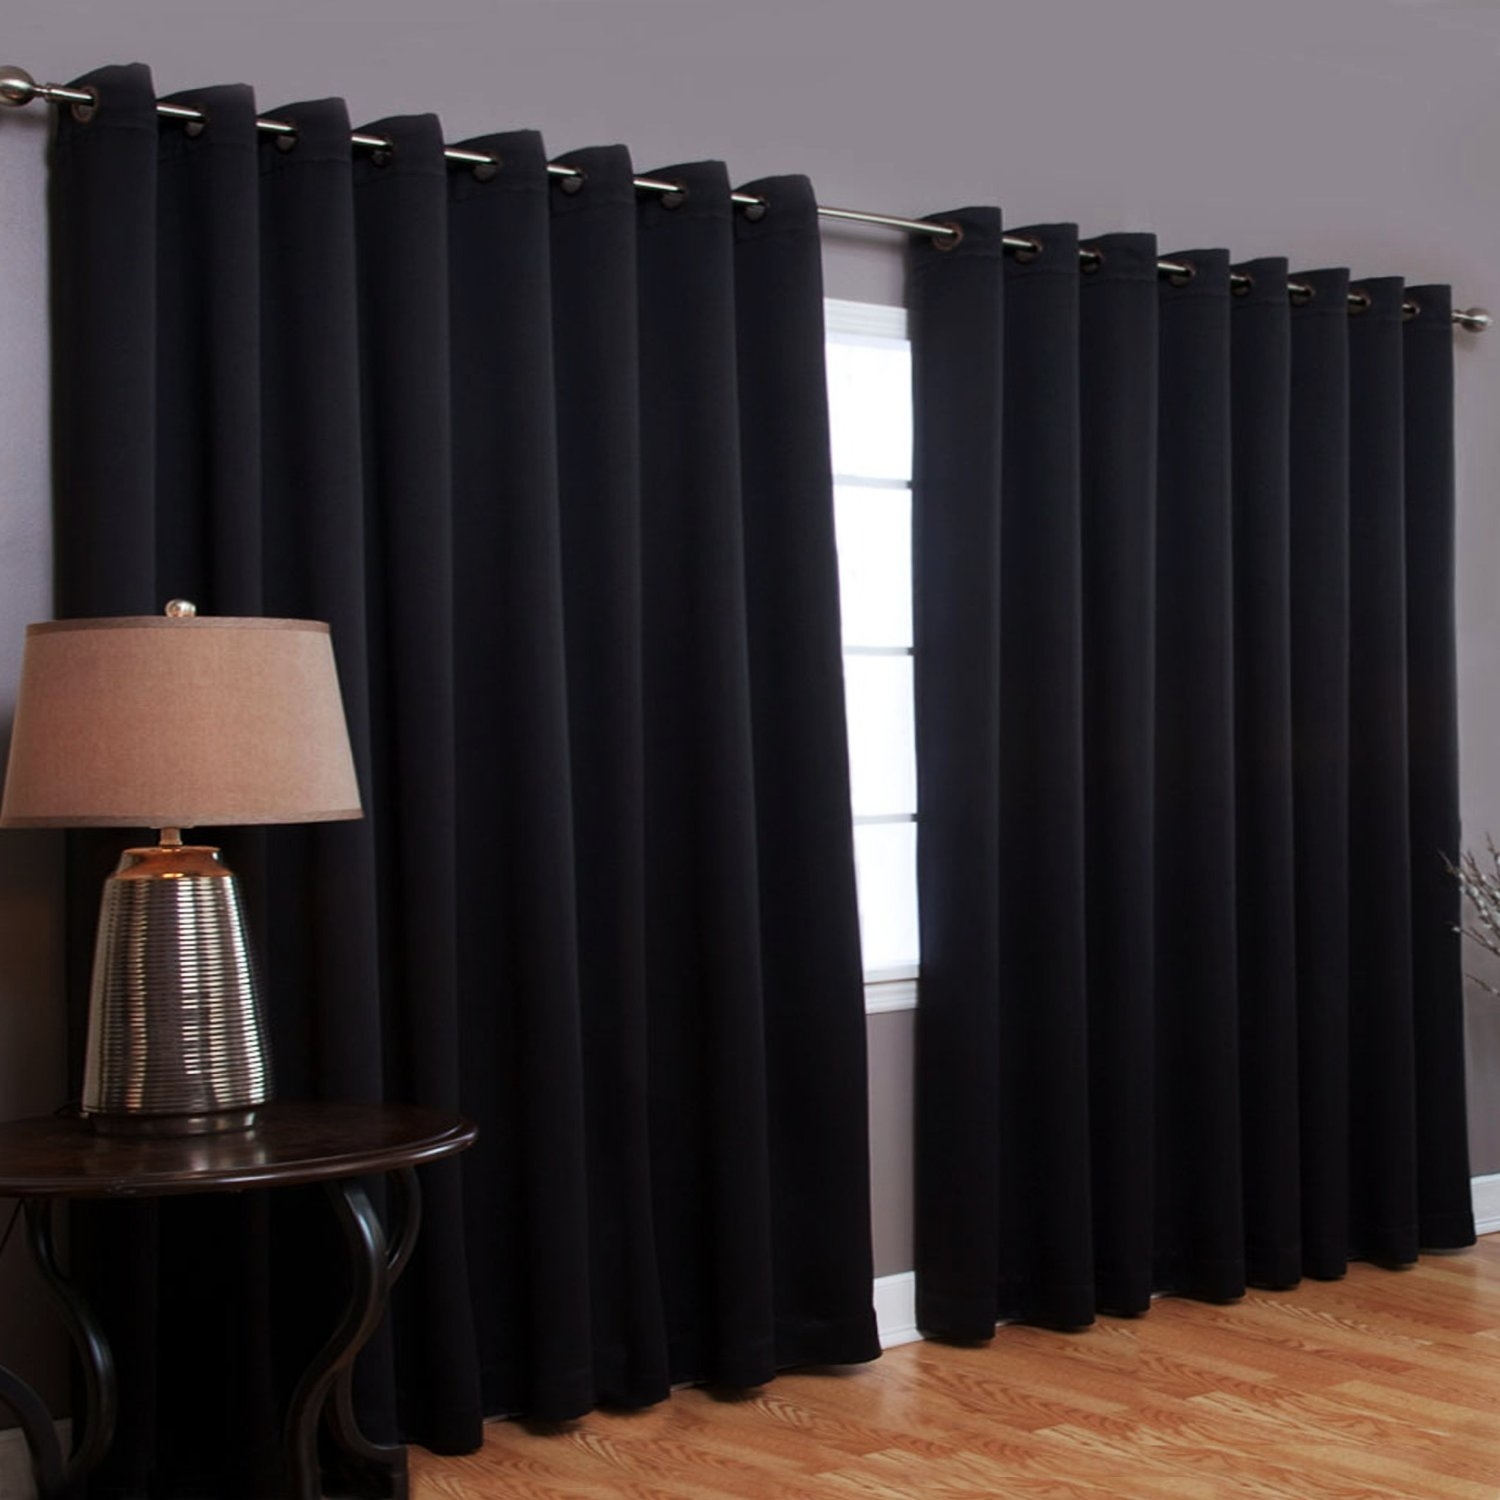 Blackout Curtains For Various Purposes Egovjournal Home Within Noise And Light Blocking Curtains (Image 4 of 15)